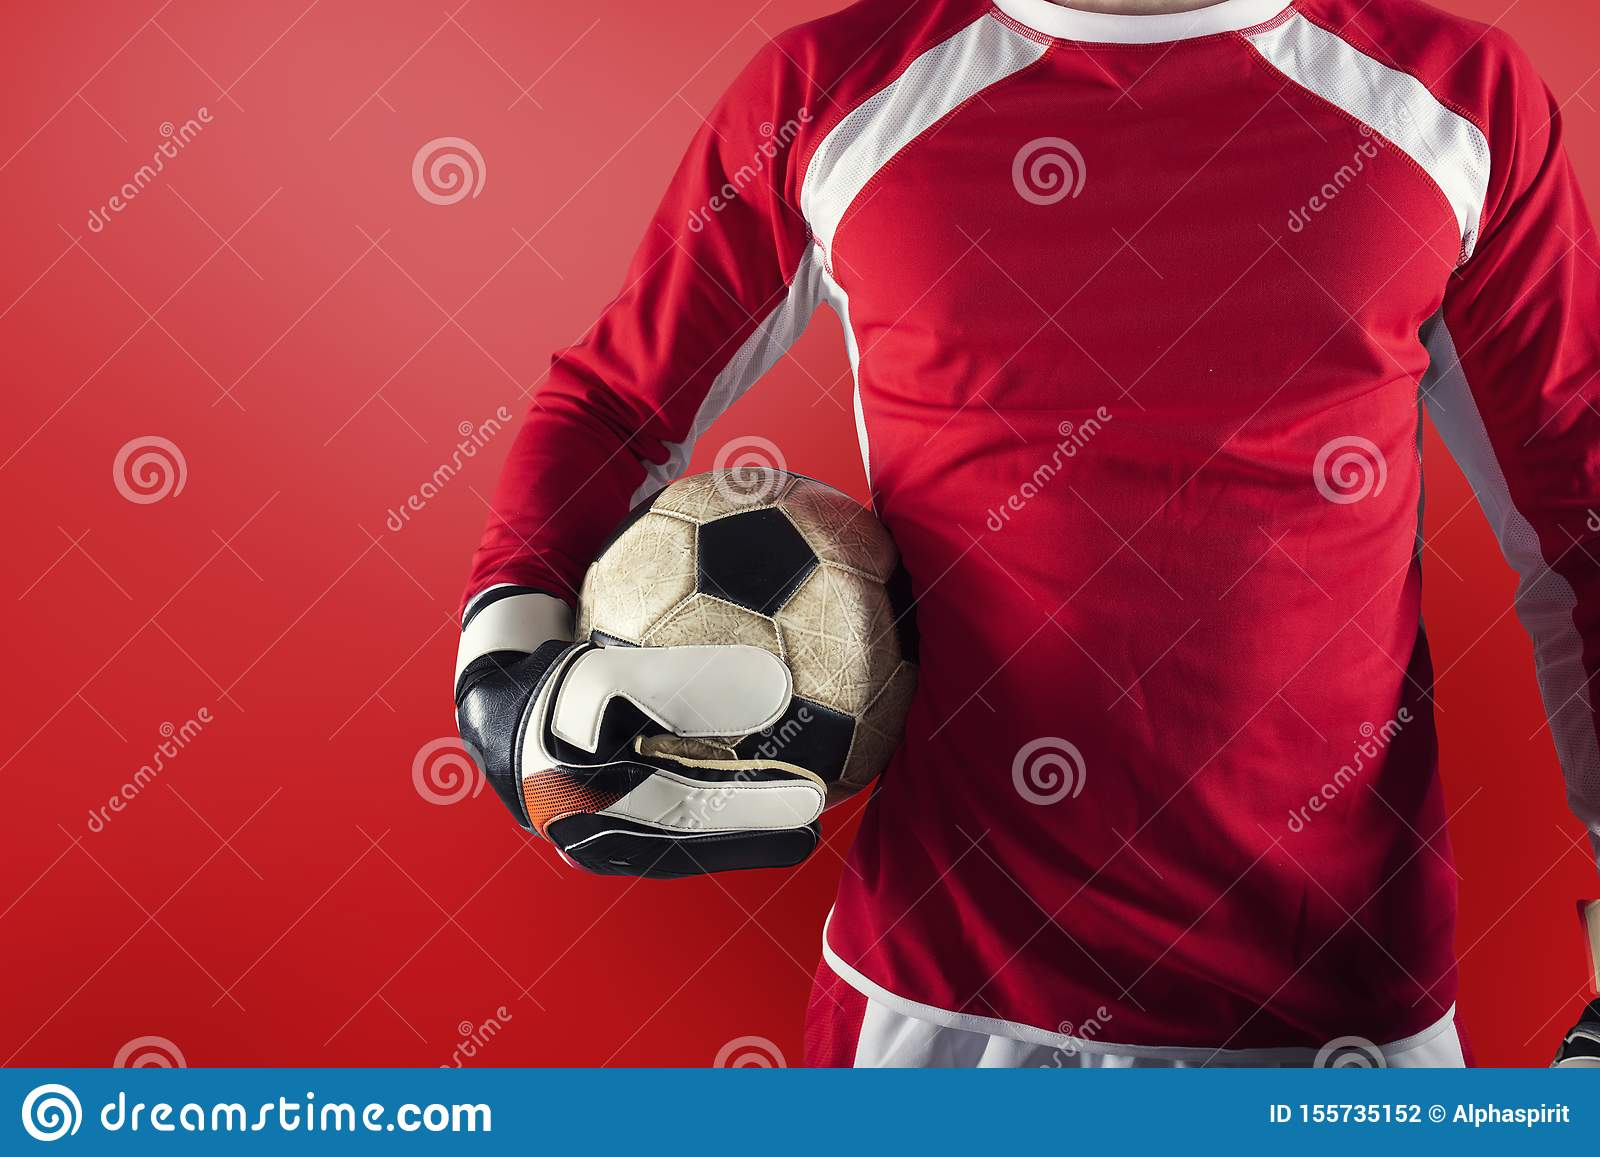 Goalkeeper ready to play with ball in his hands